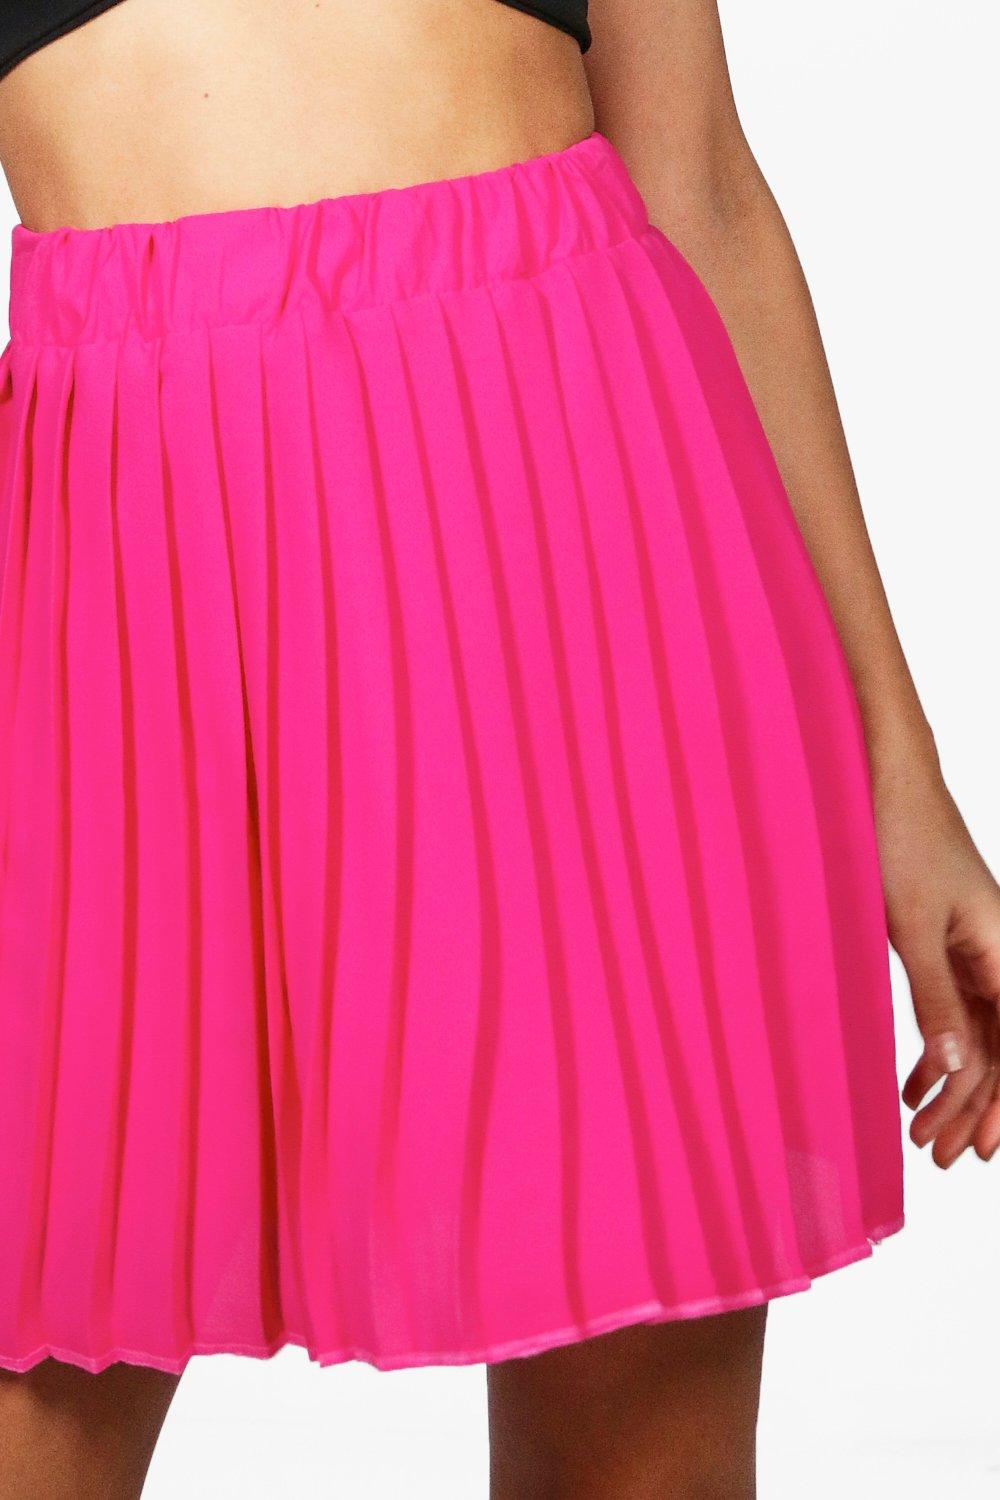 Wonderful About Womens Stretch Elastic High Waist Summer Pleated Flared Skirt